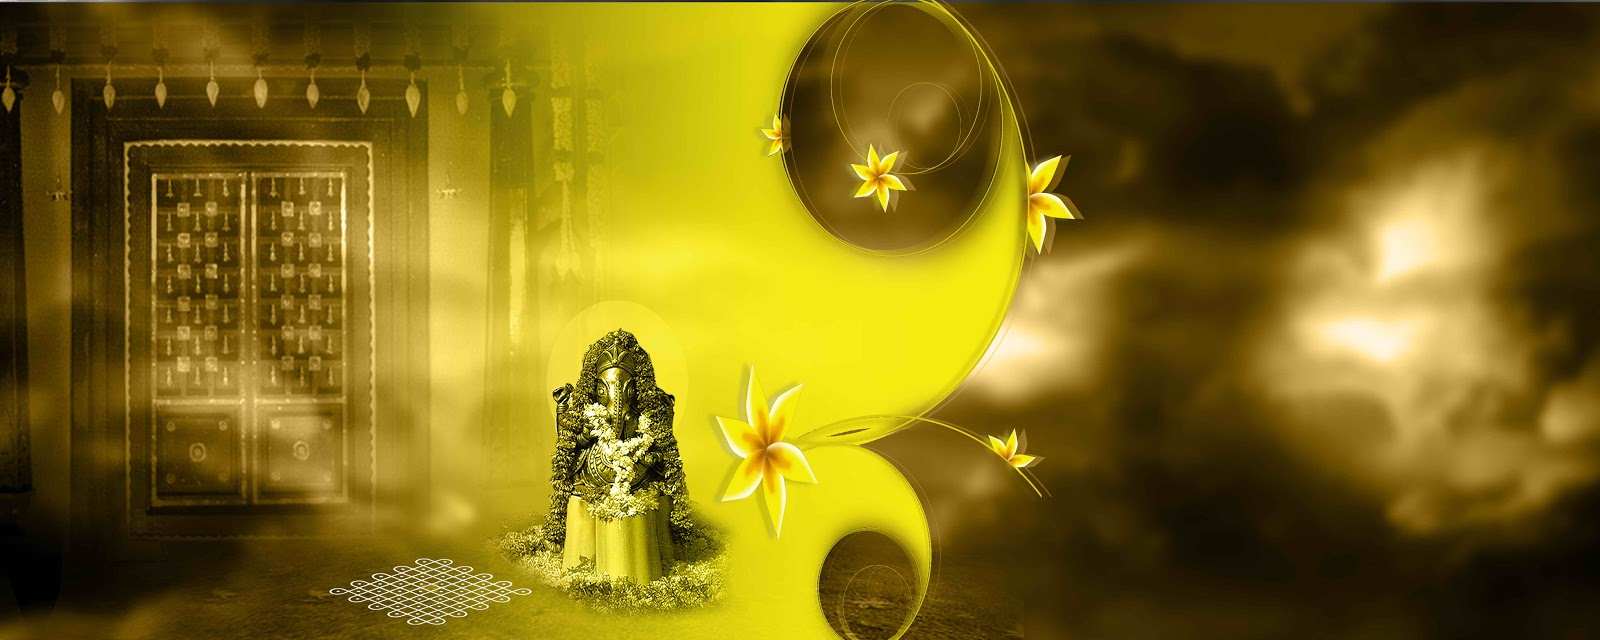 Wedding Background Images For Photoshop Free Download 3